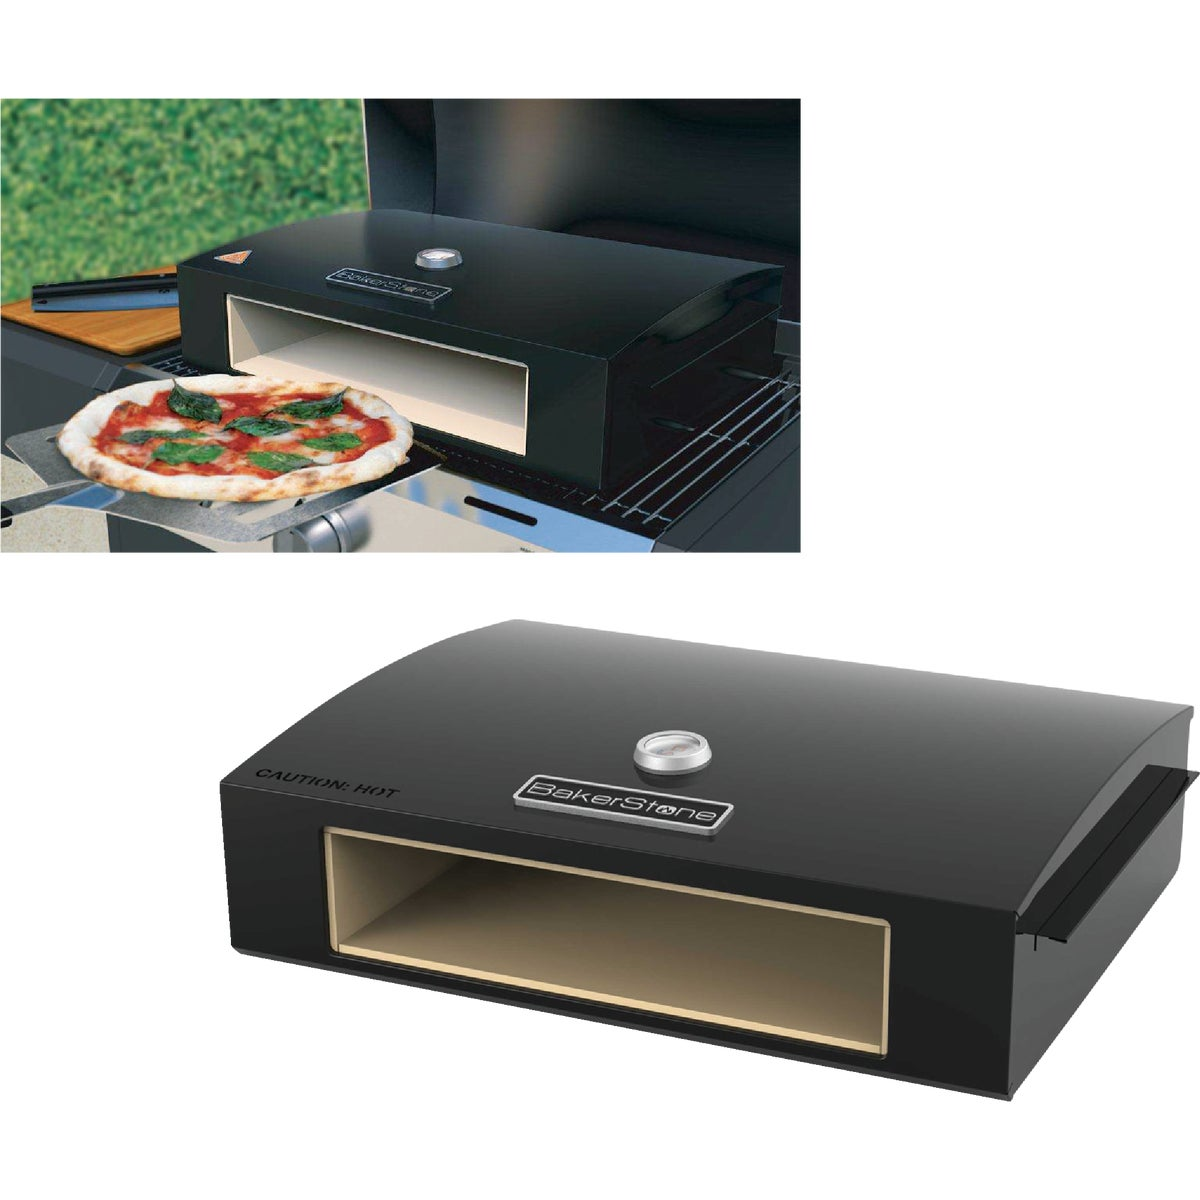 BAKERSTONE BX/PIZZA OVEN - 031513-02 by Bakerstone International